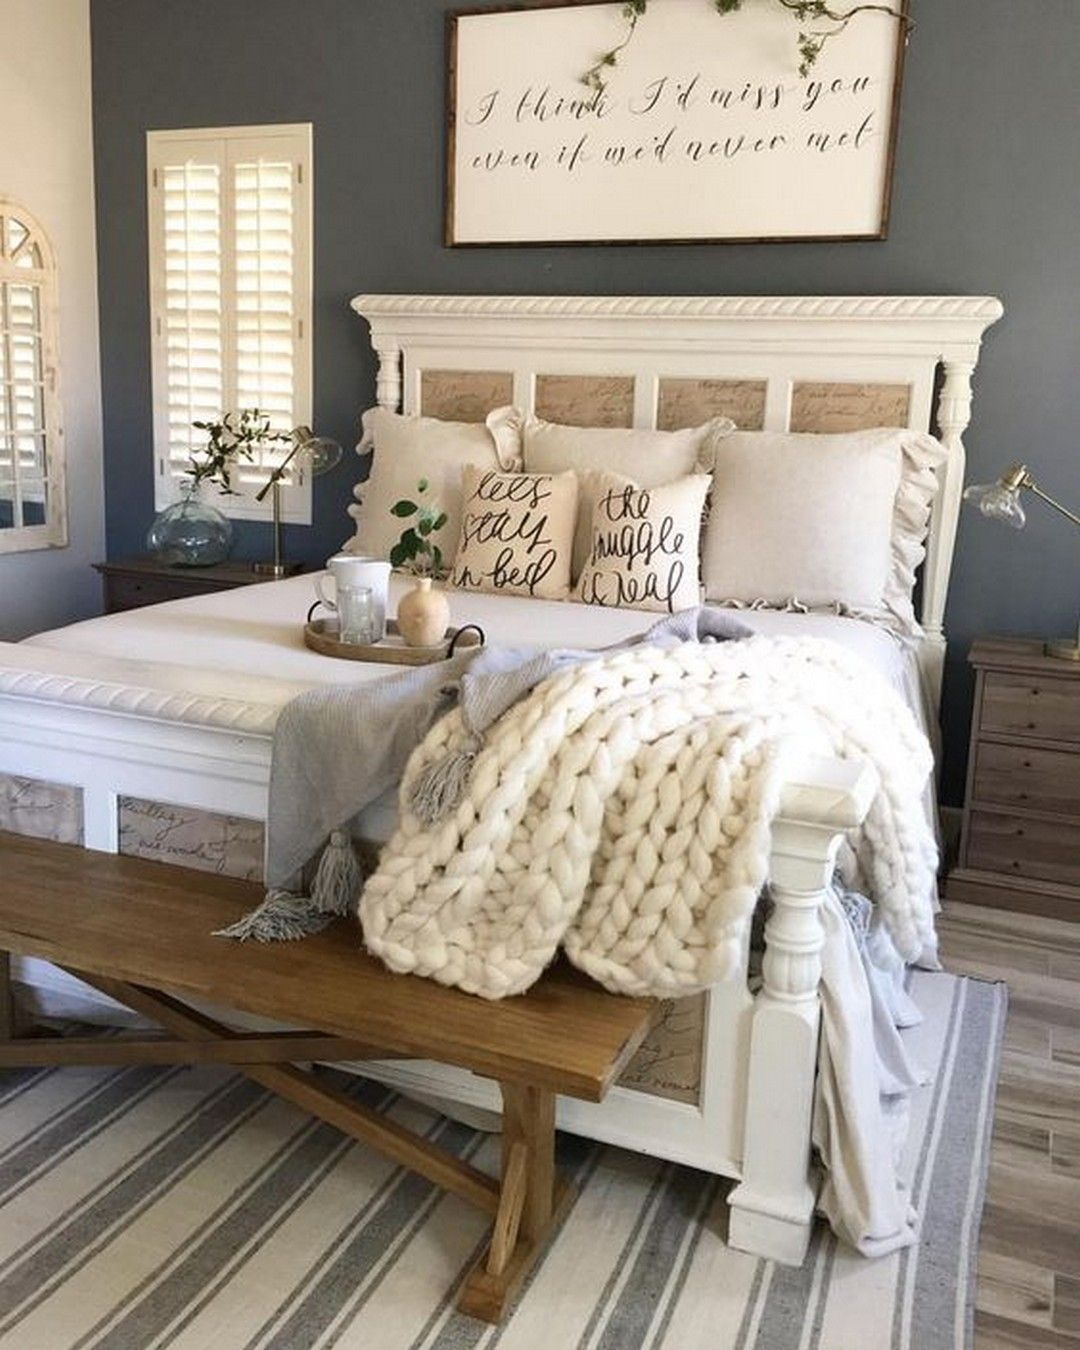 How To Get Modifying Beautiful Farmhouse Bed In Your